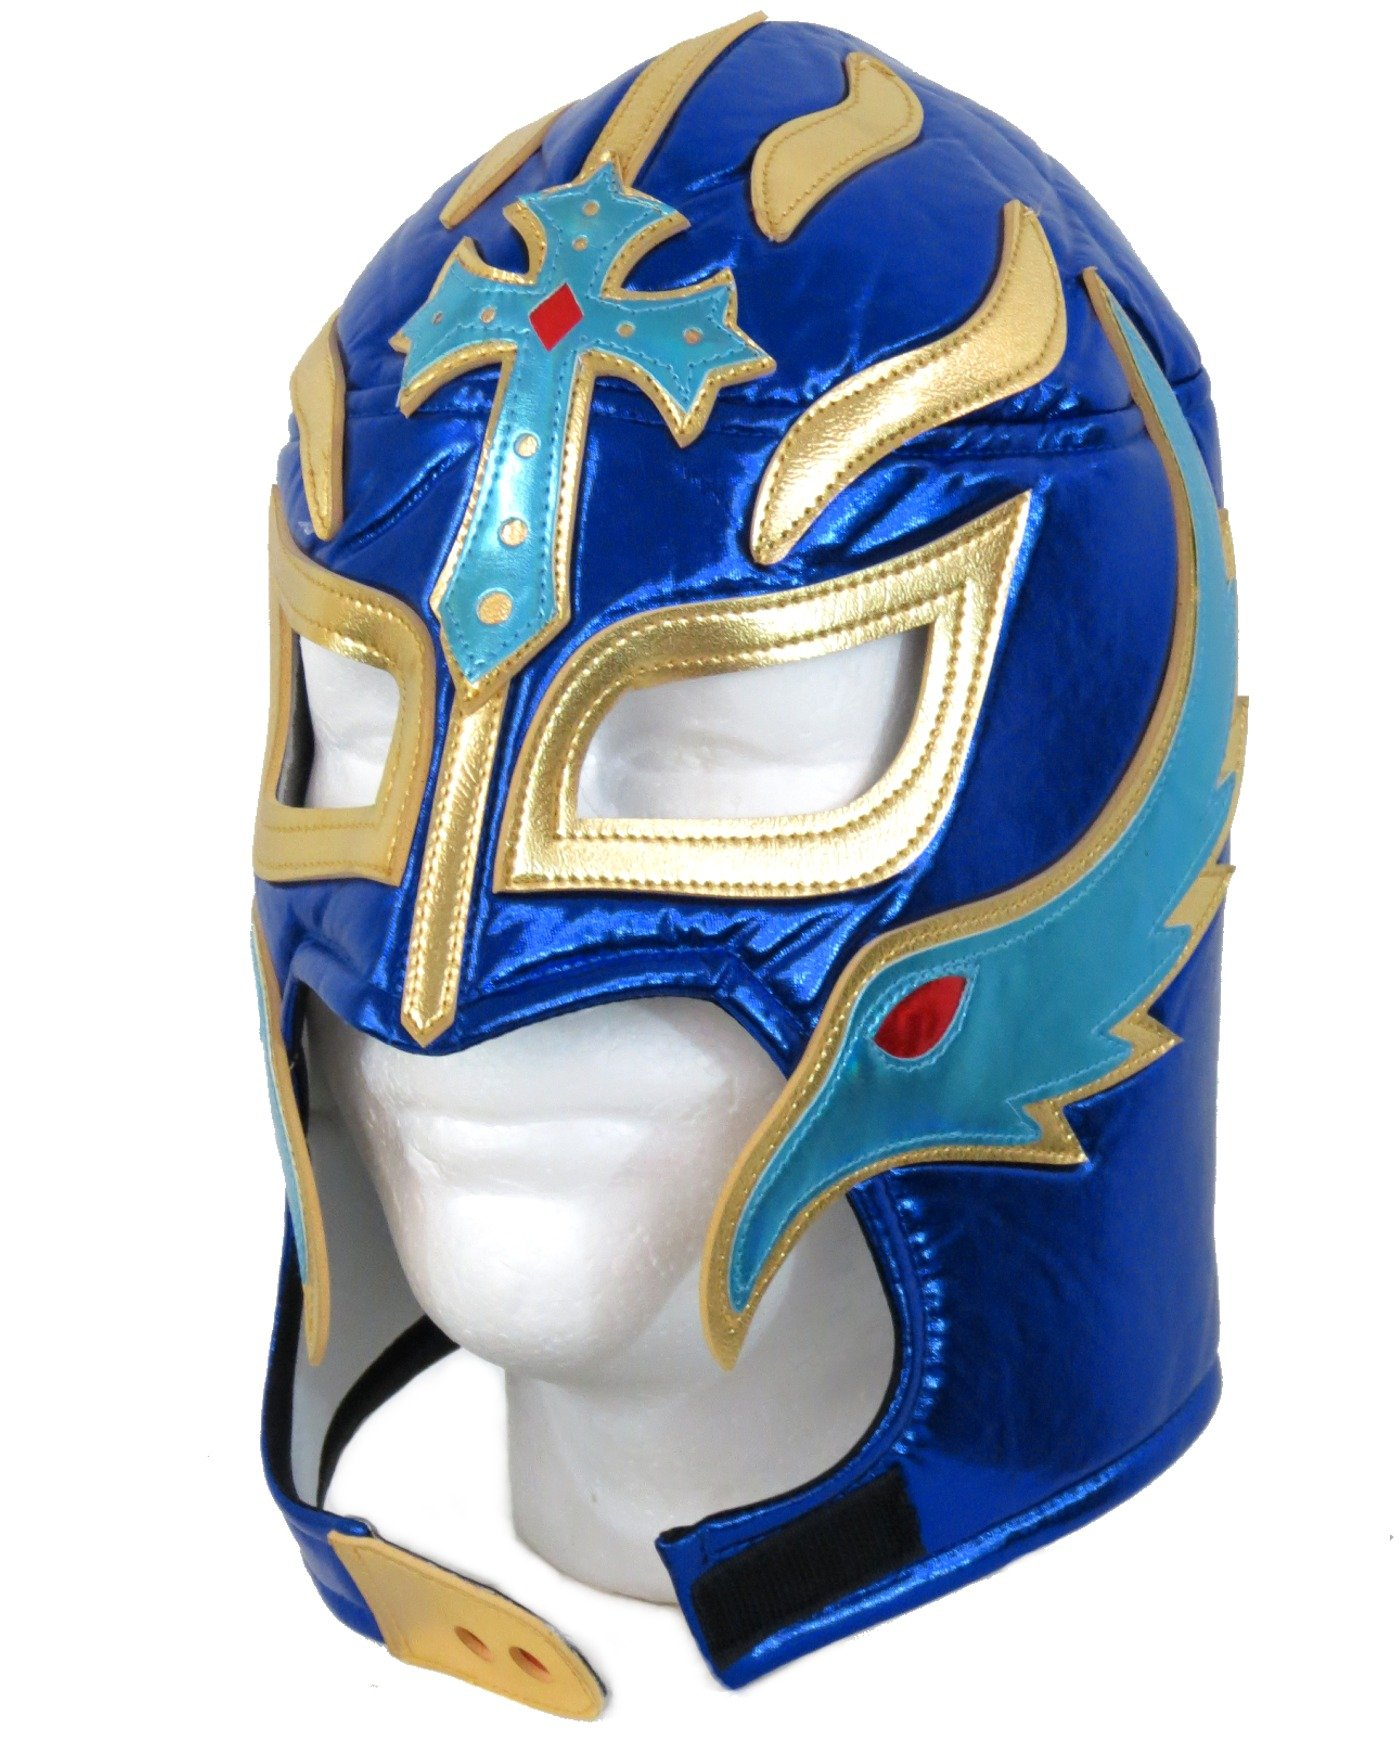 Rey Mysterio Lucha Libre Wrestling Mask (Pro-fit) Costume Wear Royal Blue MX03